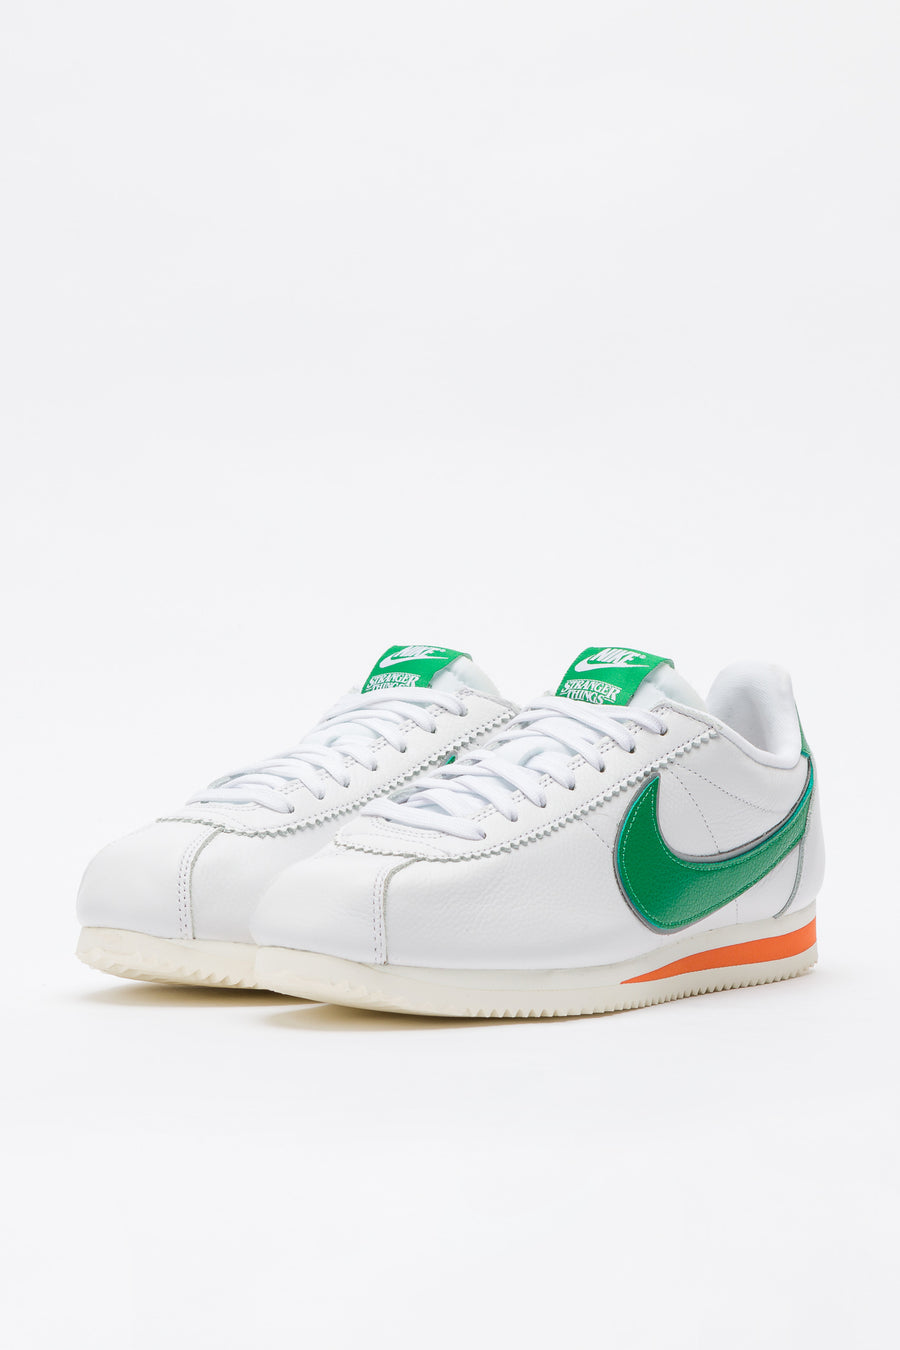 Nike Stranger Things Hawkins High Cortez in White/Pine Green/Clay - Notre